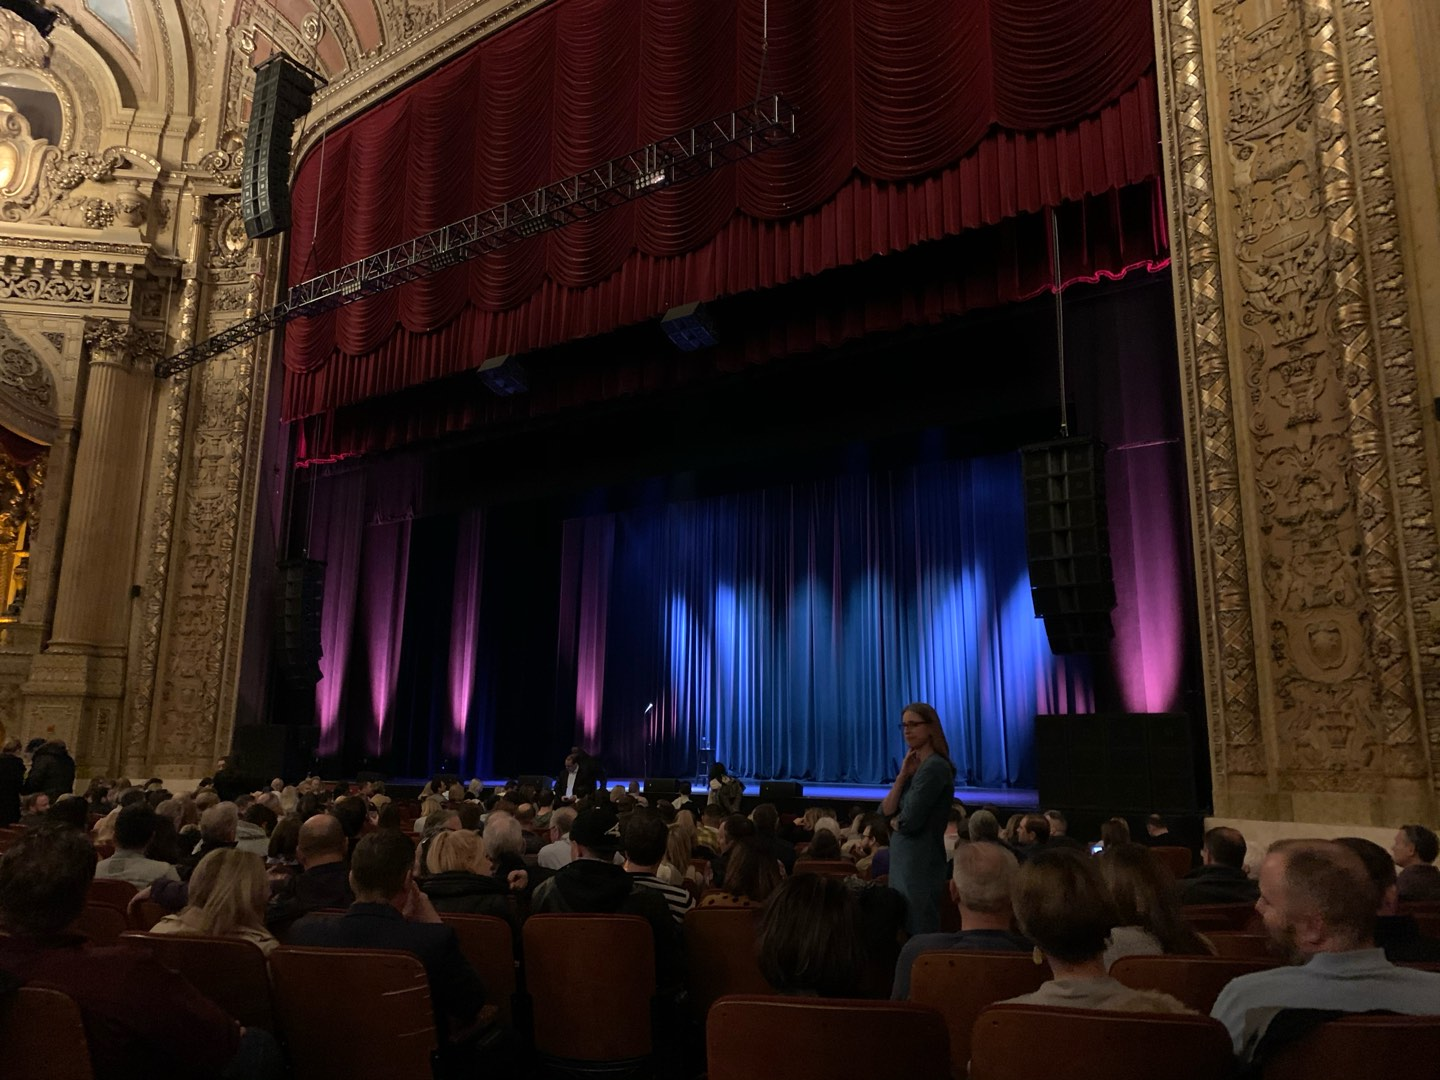 Chicago Theatre Section MNFL2R Row C Seat 208